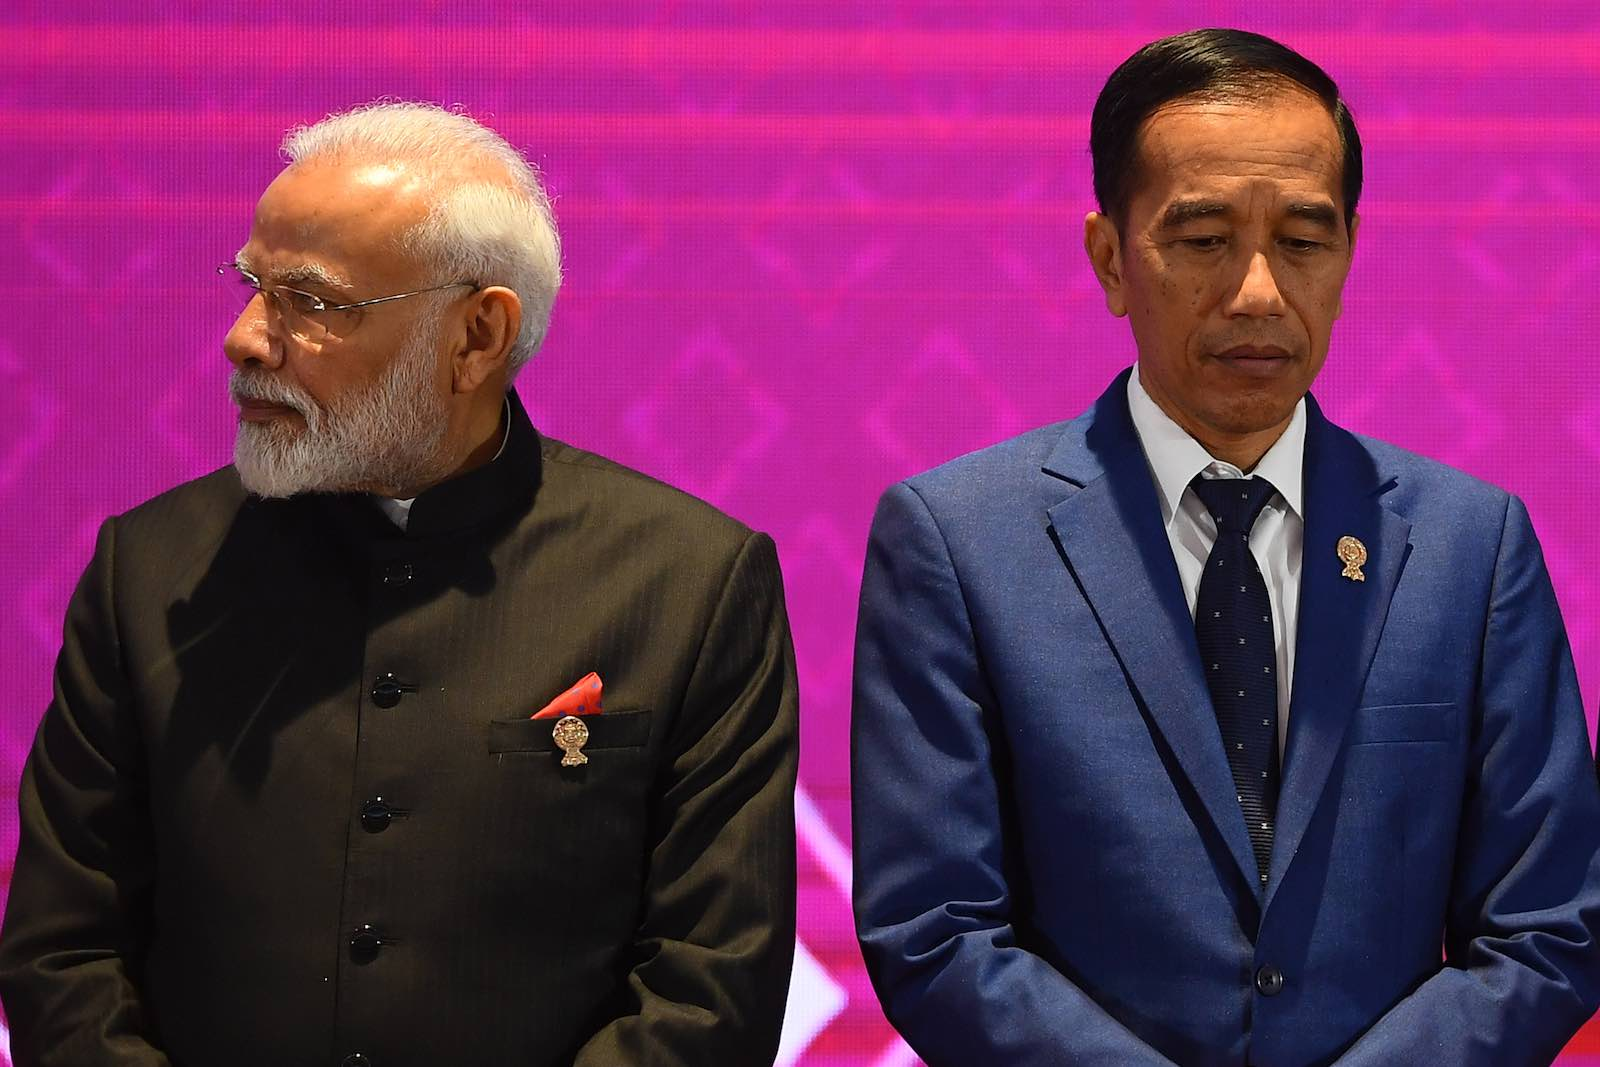 India's Prime Minister Narendra Modi and Indonesia's President Joko Widodo at the East Asia Summit in November (Photo: Manan Vatsyayna/AFP/Getty Images)